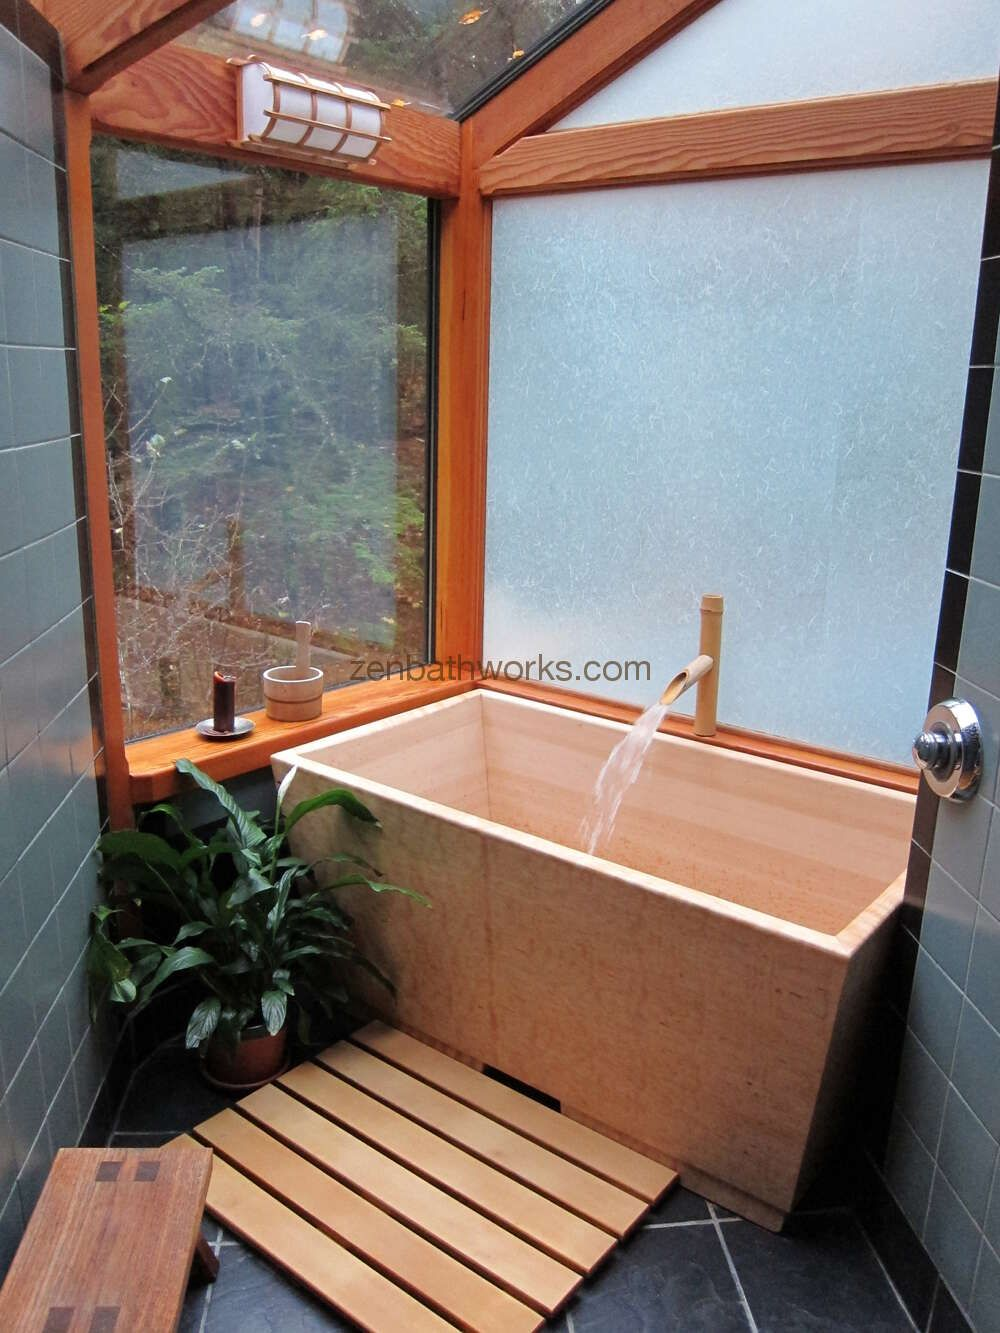 Hinoki Bathtub Filling With Hot Water These Tubs Are Deep 22 Inches Japanese Bathroom Design Japanese Soaking Tubs Japanese Style Bathroom